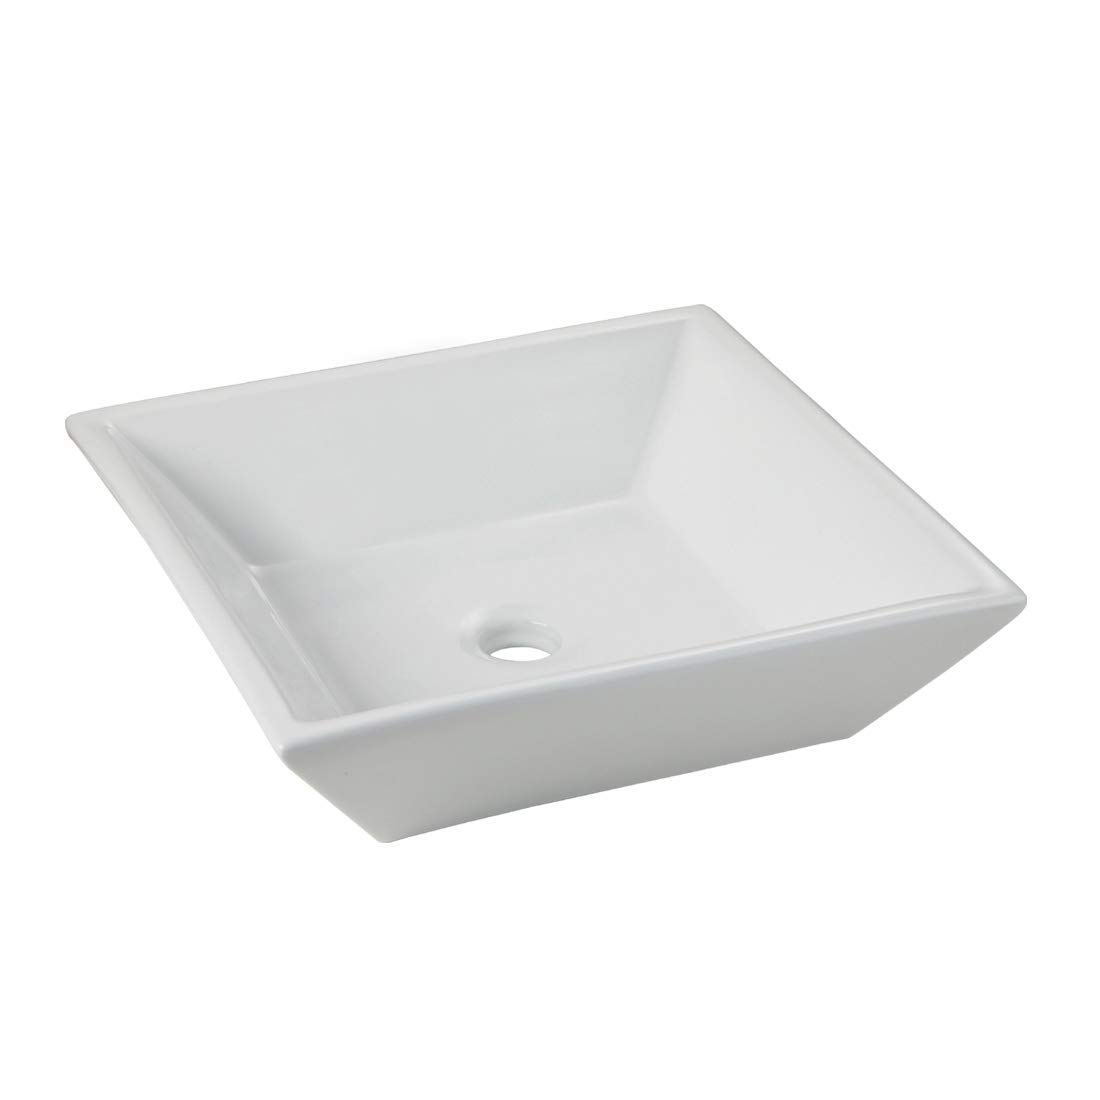 WinZo WZ6079 Square Bathroom Vessel Sink,White Porcelain Ceramic Art Basin Countertop Vanity Lavatory